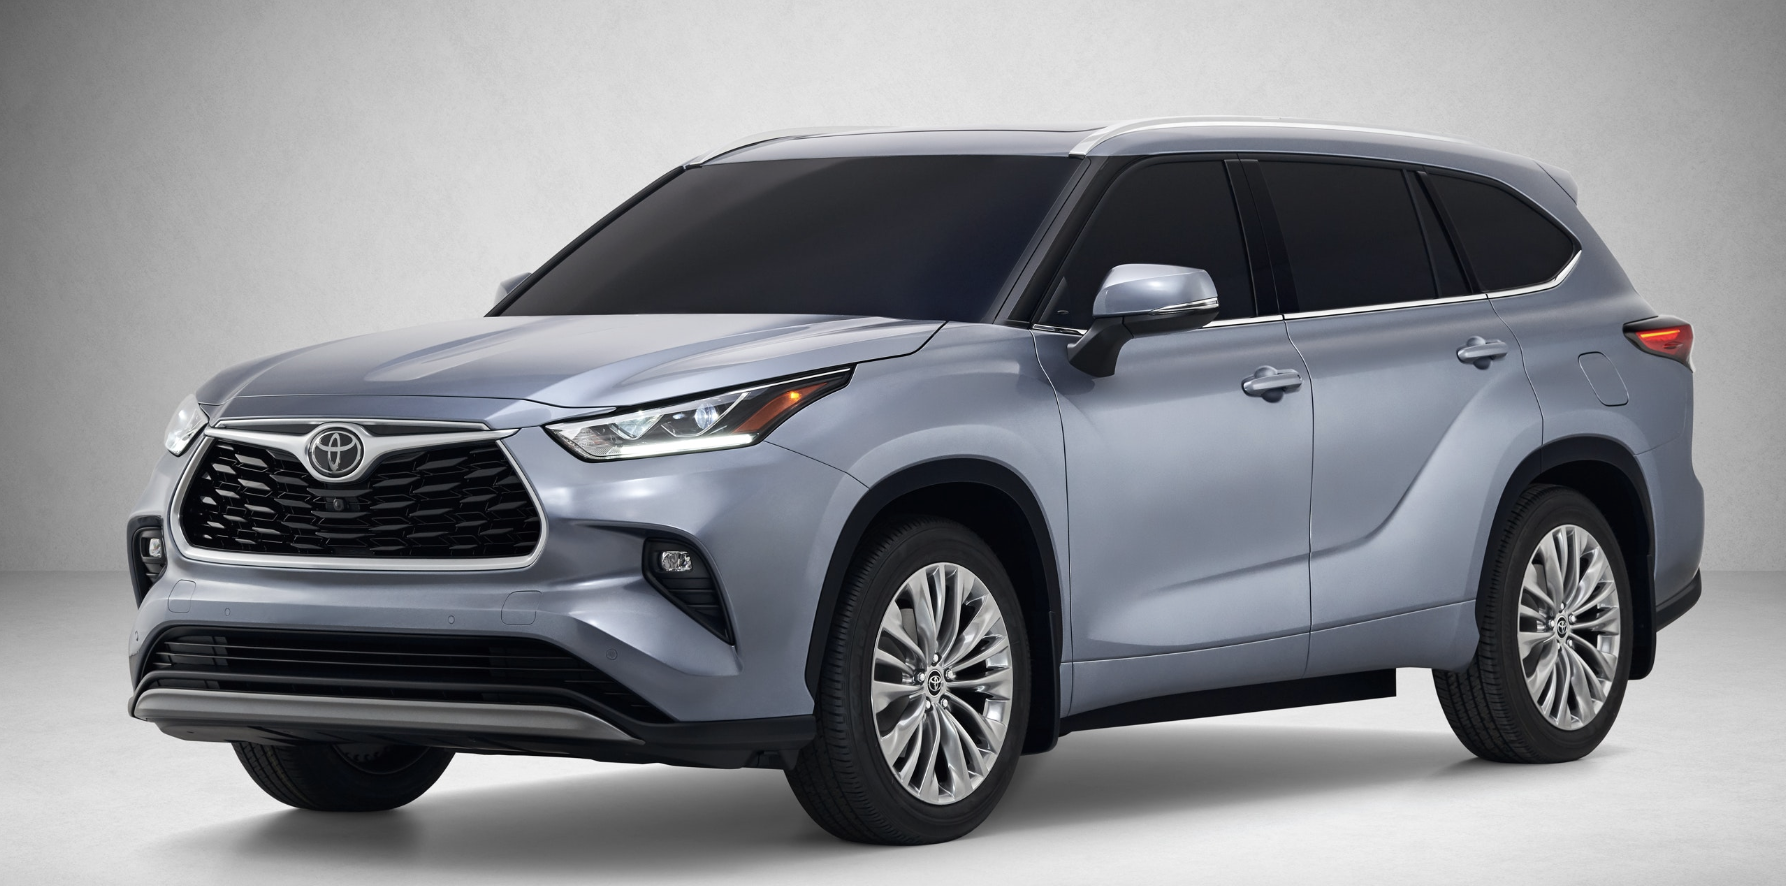 2020 Toyota Highlander The Daily Drive Consumer Guide 174